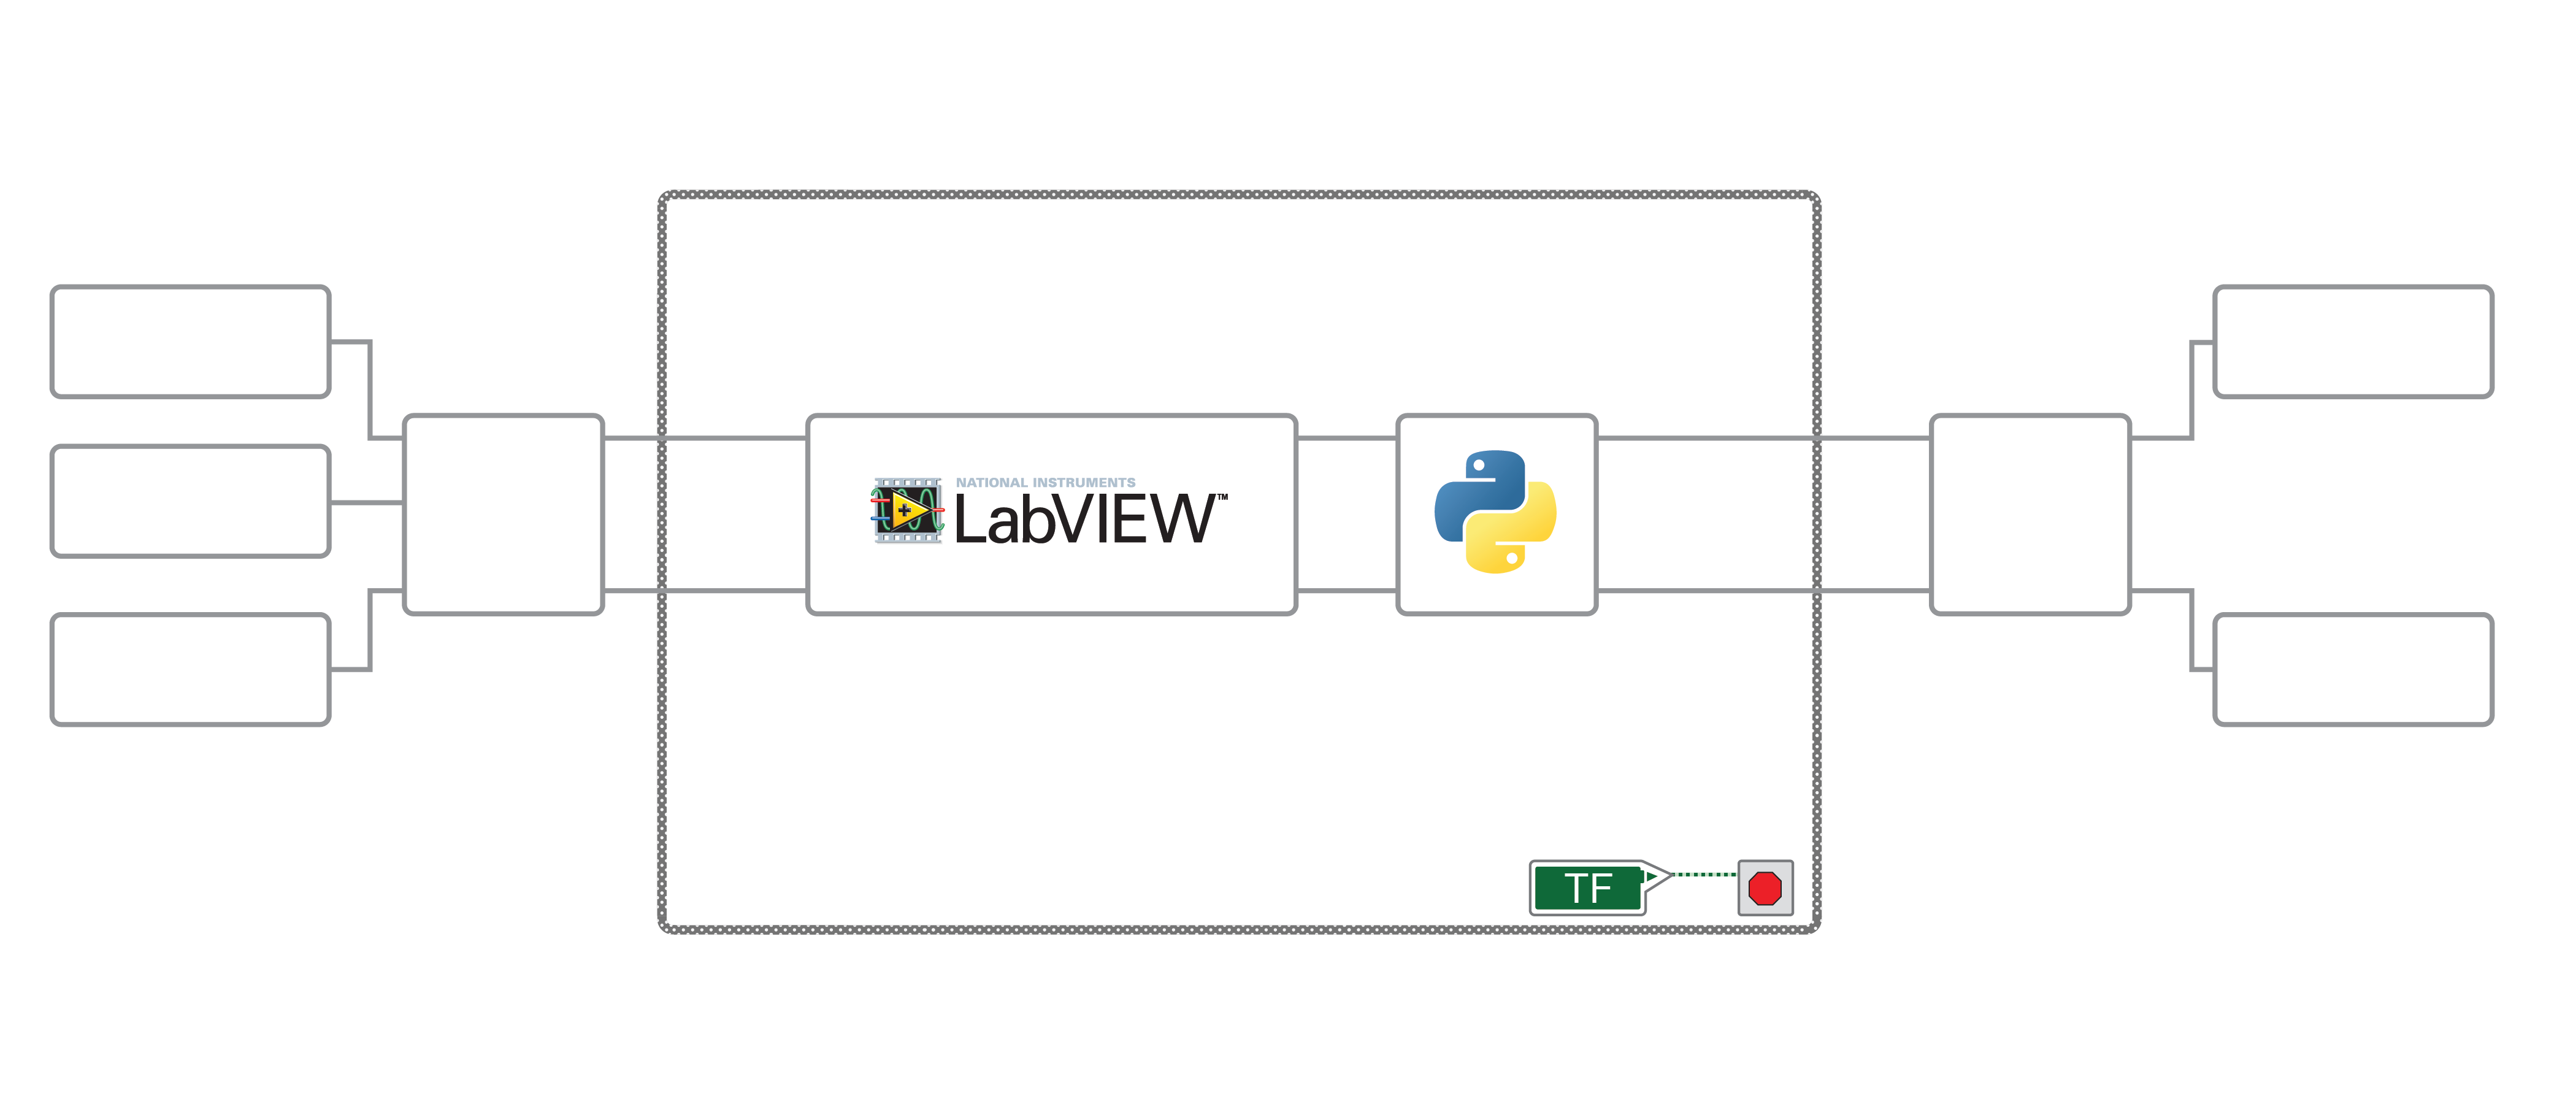 LabVIEW and Python: Friends or Foes? - NI Community ...